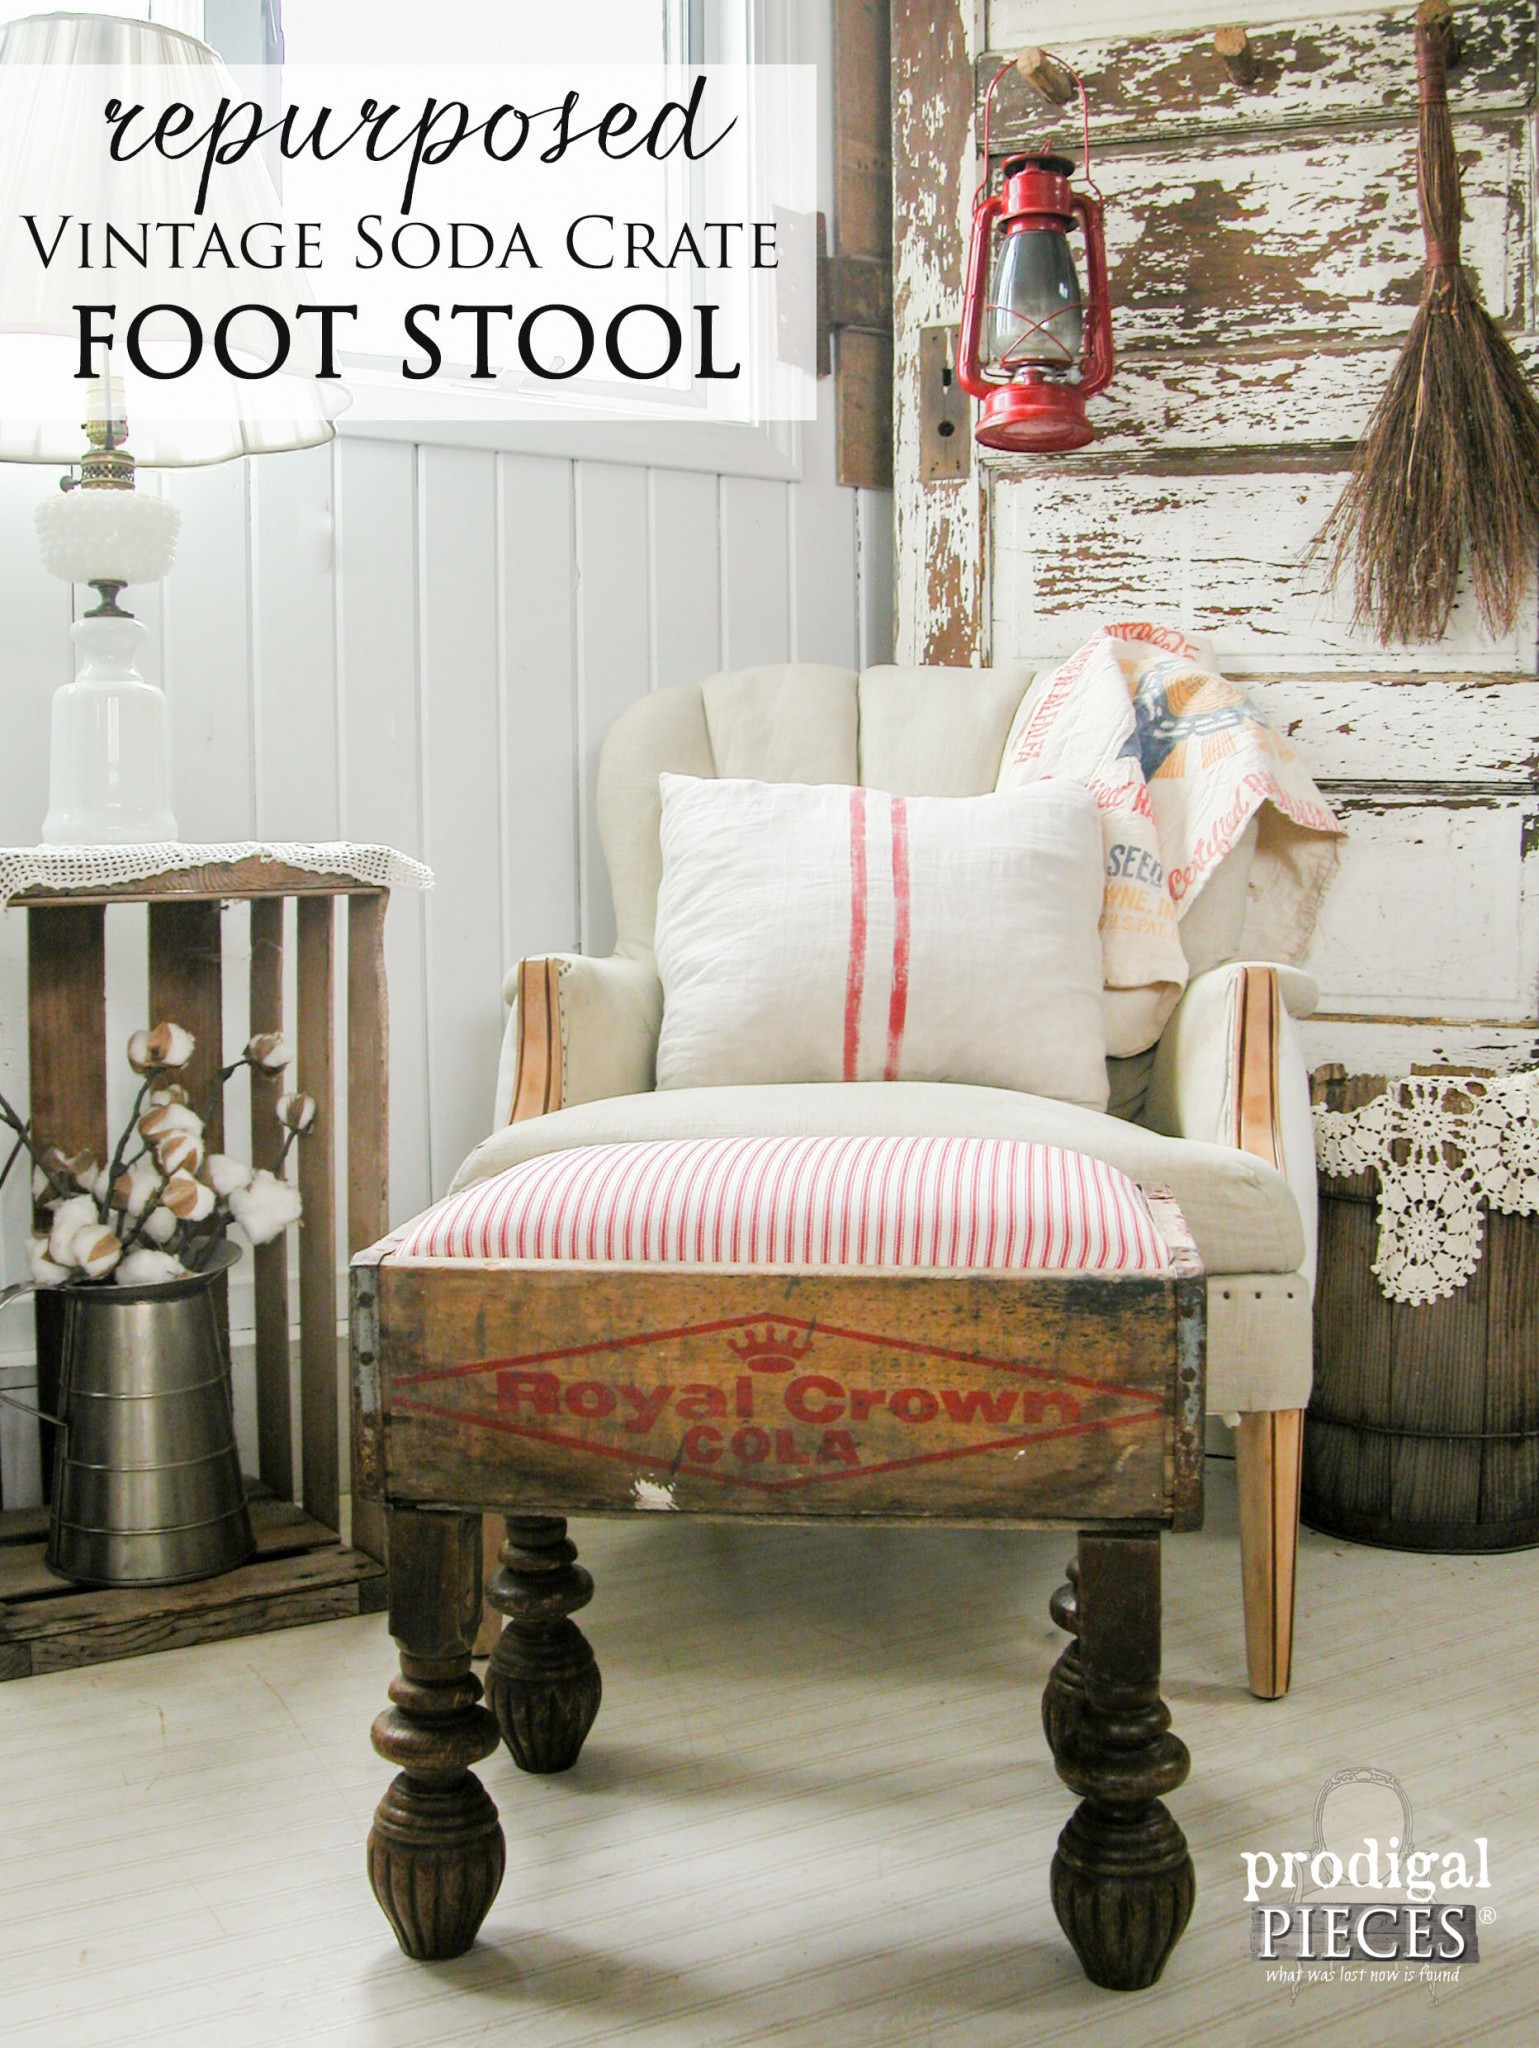 Vintage Soda Crate Repurposed into Foot Stool by Prodigal Pieces | prodigalpieces.com